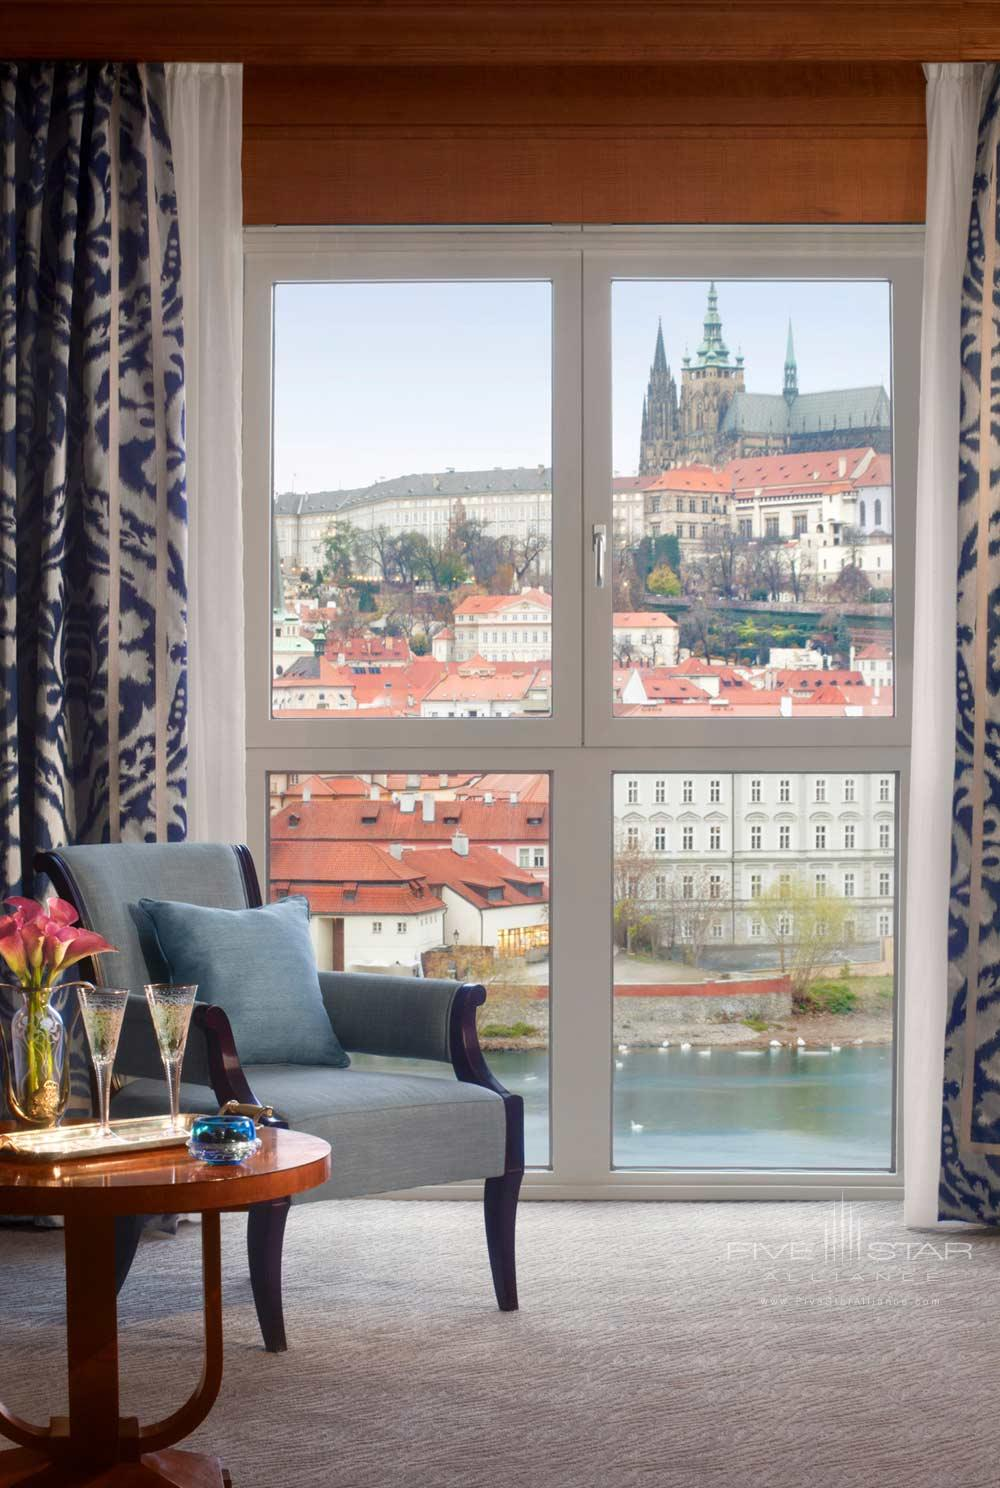 Four Seasons Prague guestroom, Praha, Czech Republic